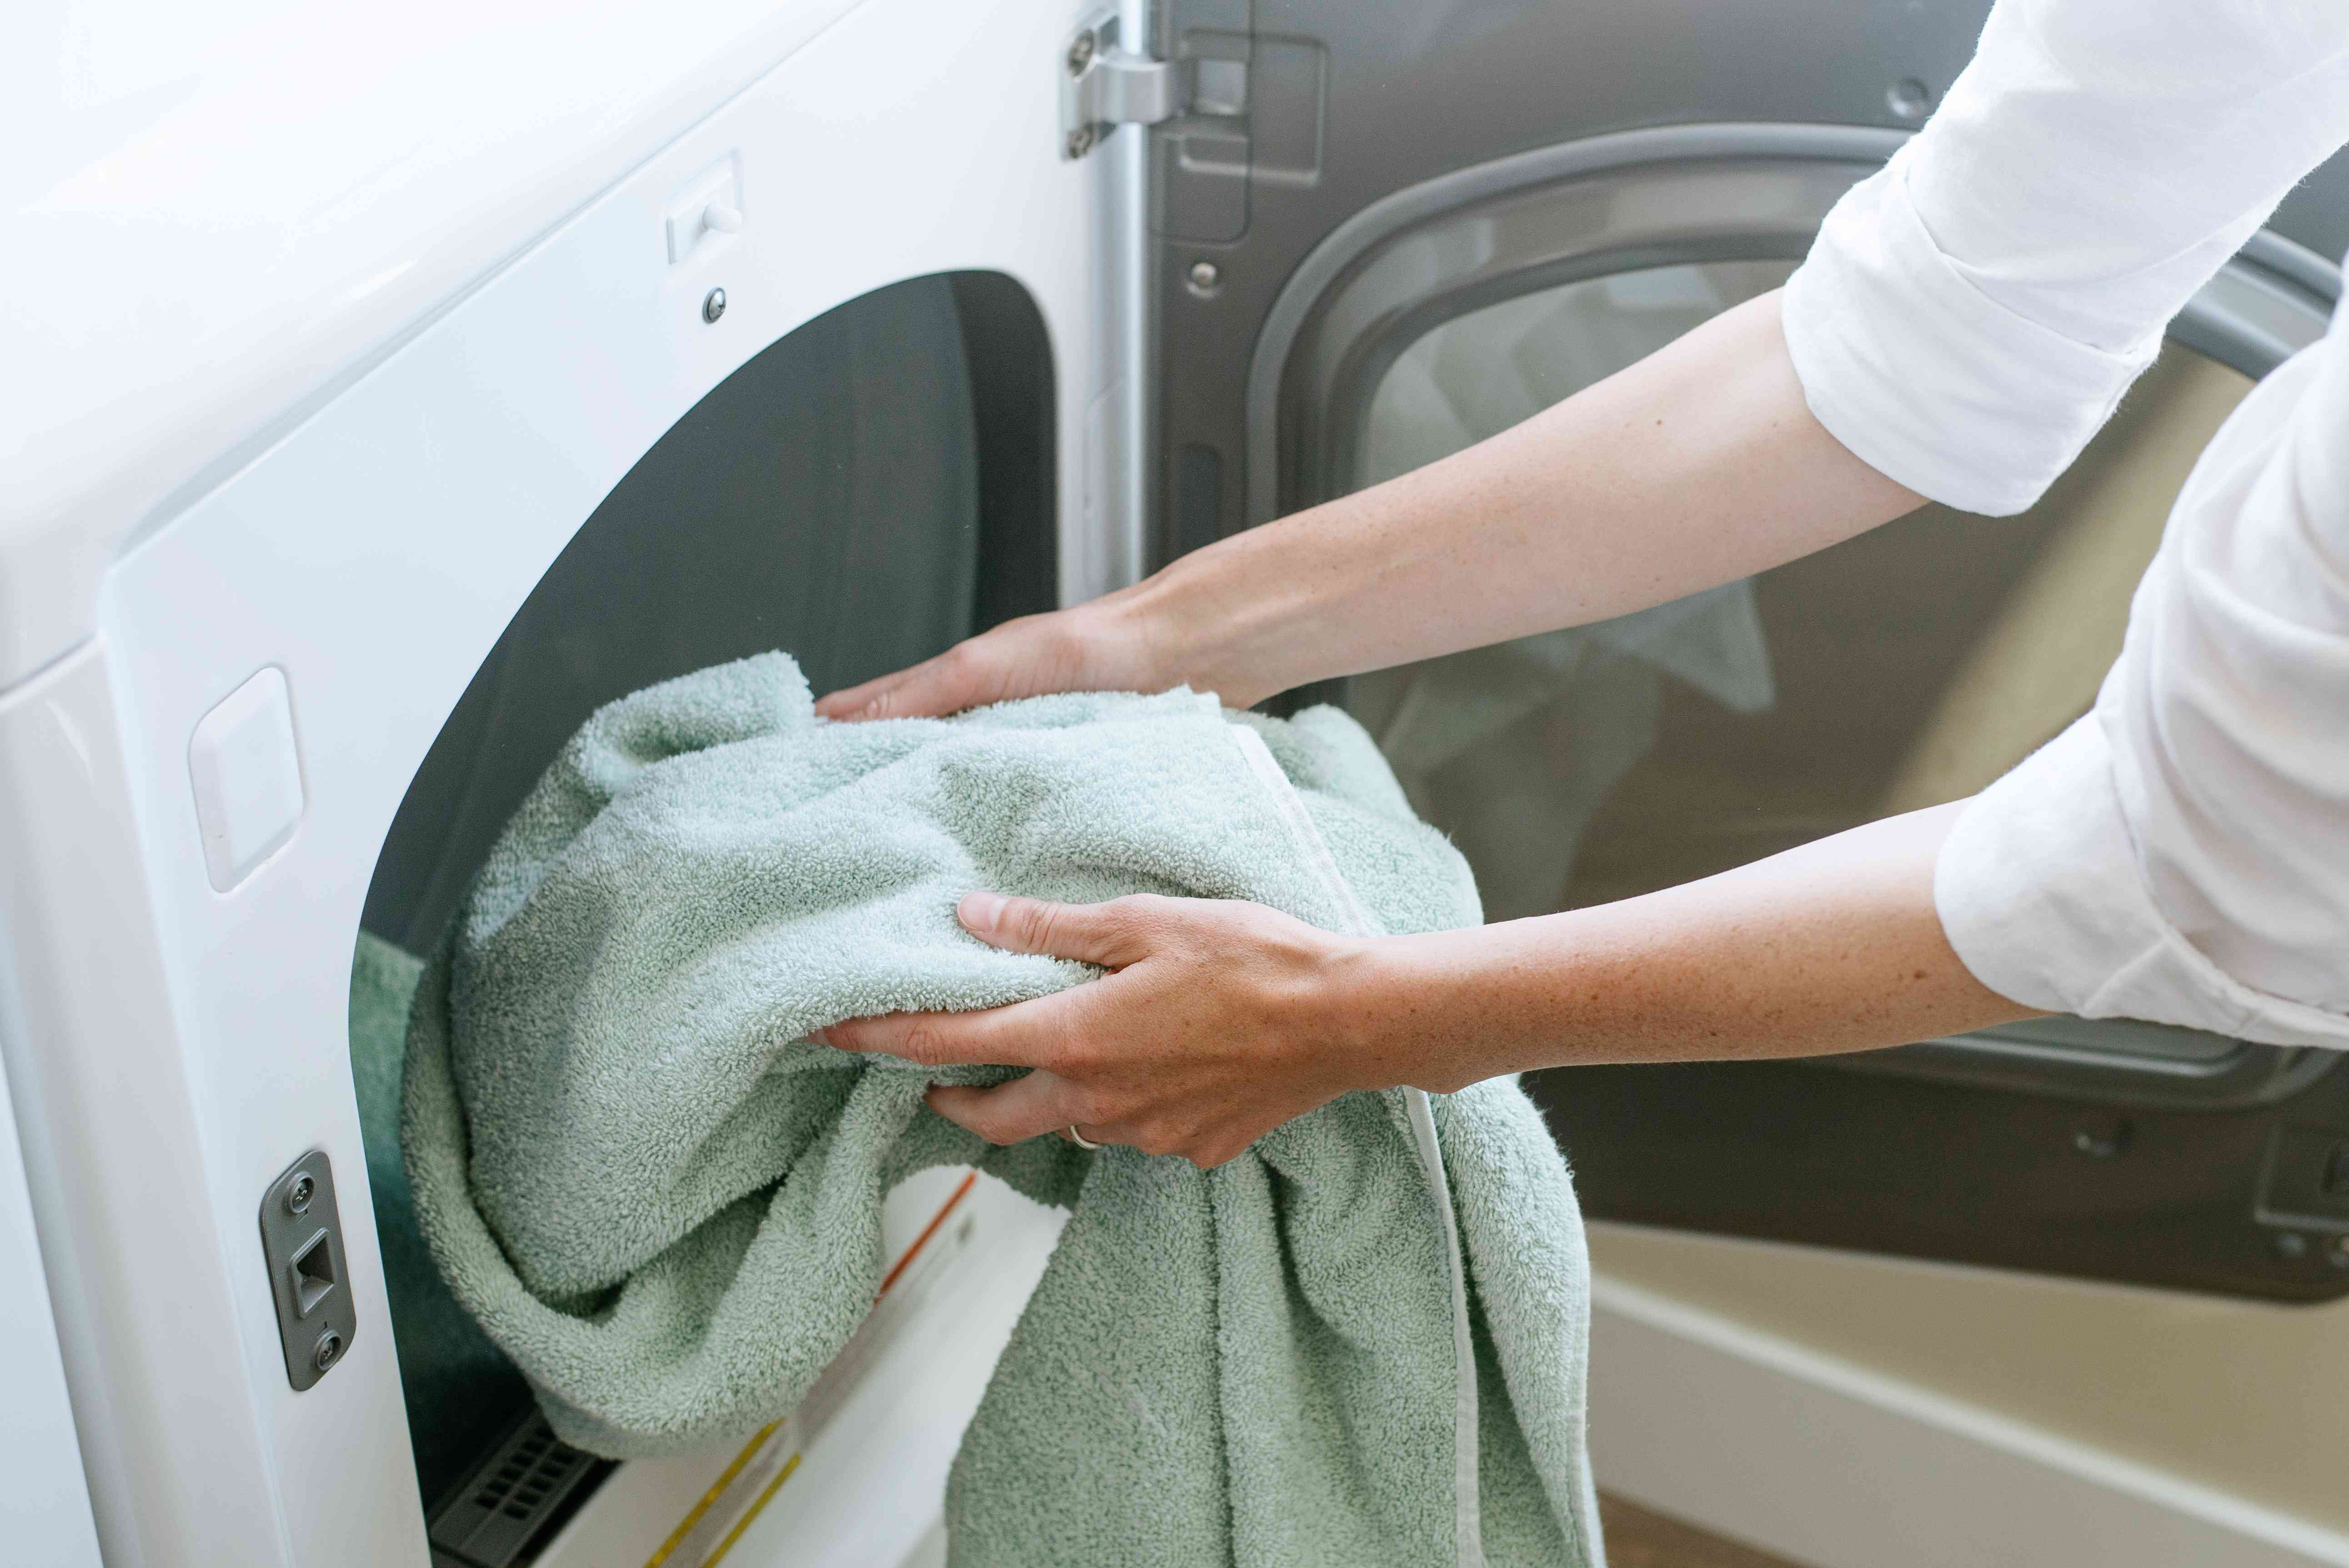 Mint green towel being placed in drying machine